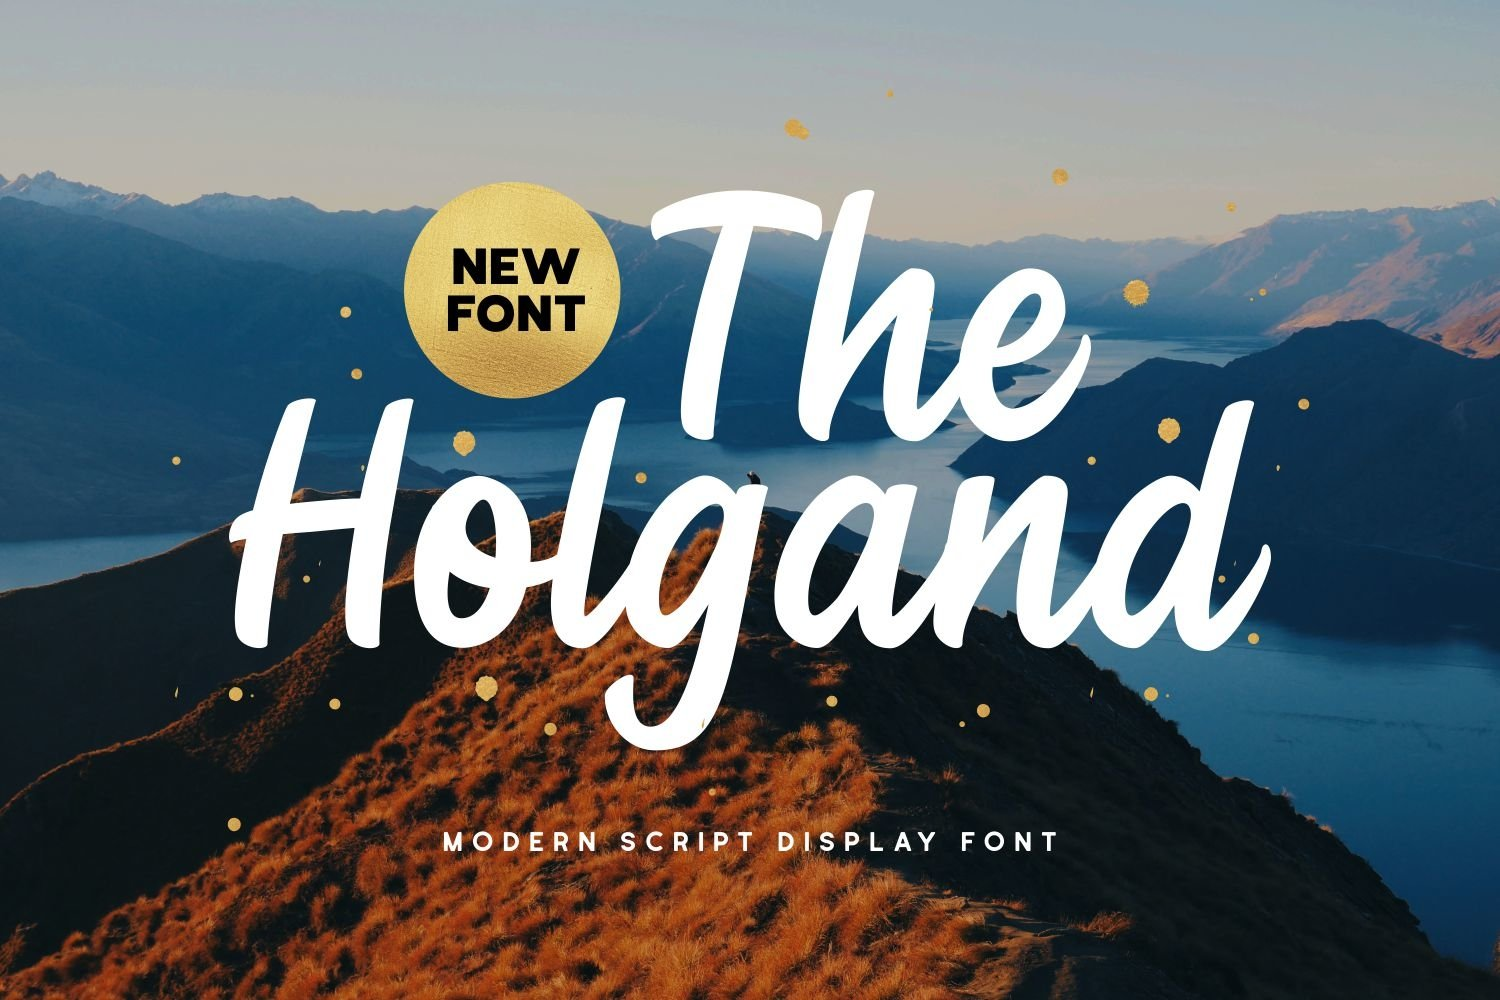 Holgand - Script Display Font example image 1